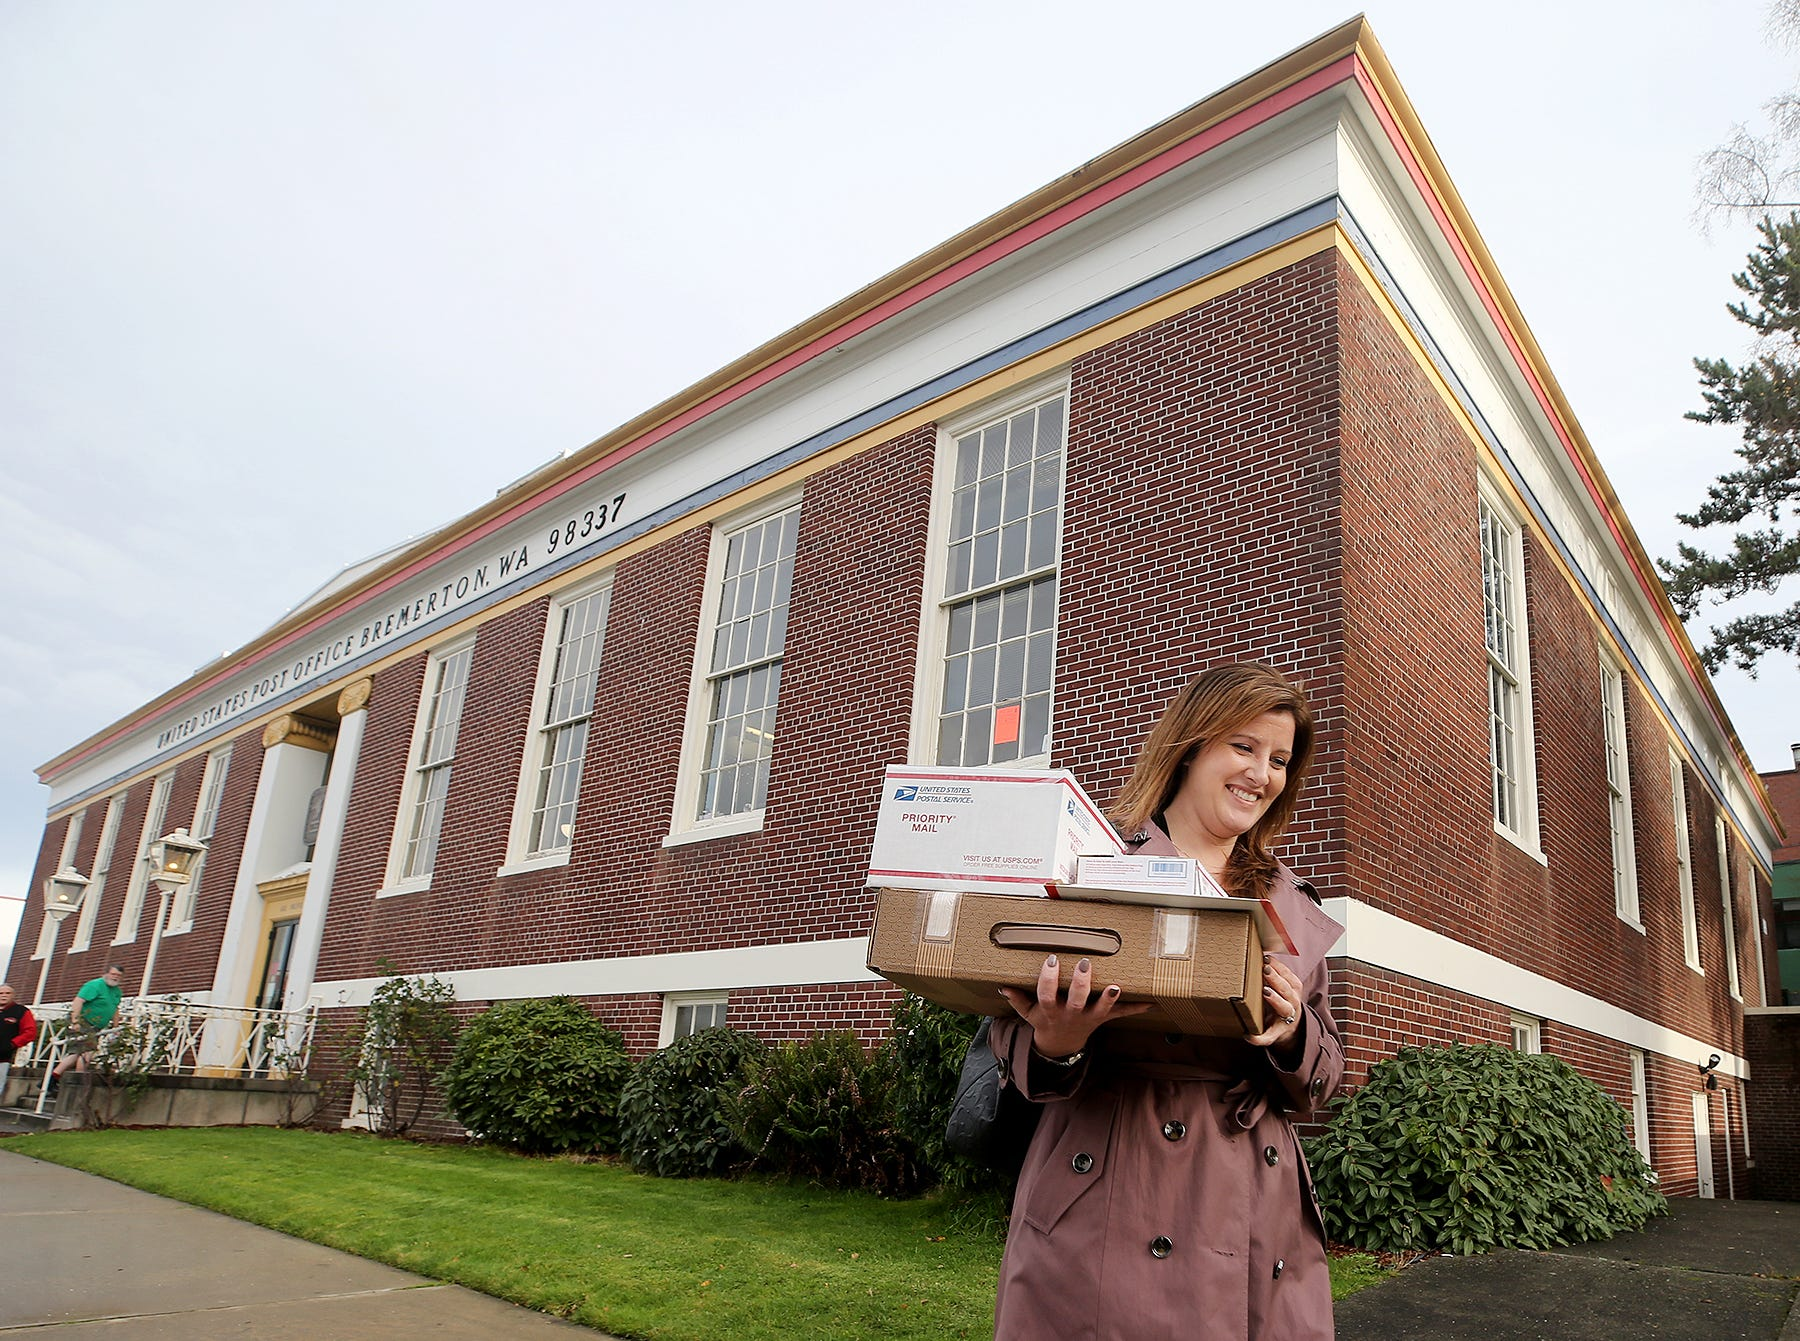 Teresa Bryant picks up fun Christmas gifts for her family at the downtown Bremerton Post Office on Monday, December, 17, 2018.